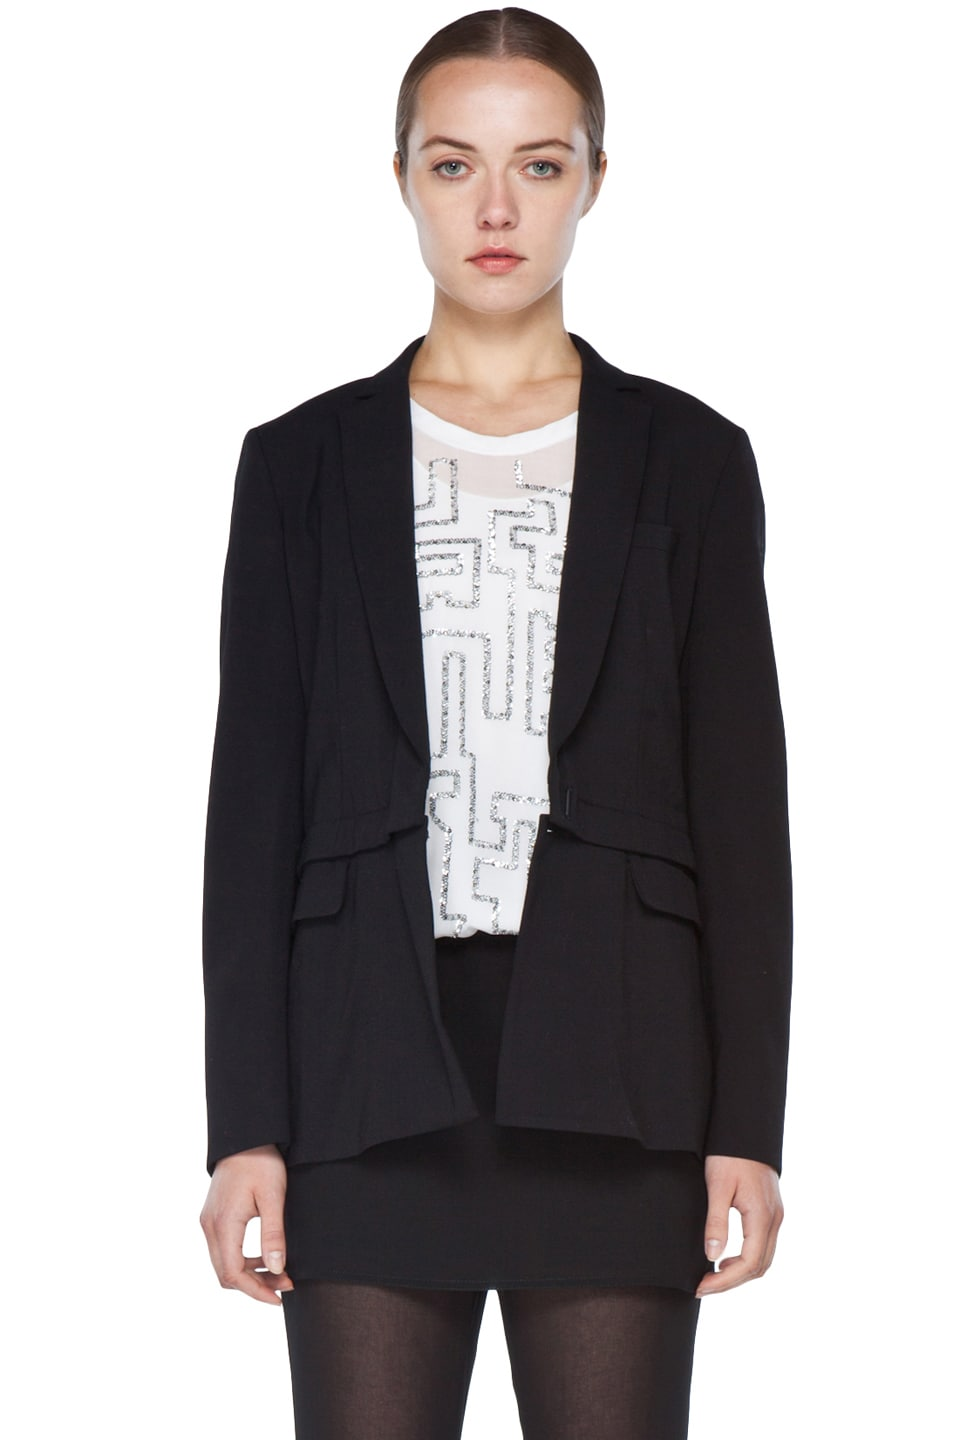 Image 1 of 3.1 phillip lim Blazer with Detachable Lower Panel in Black